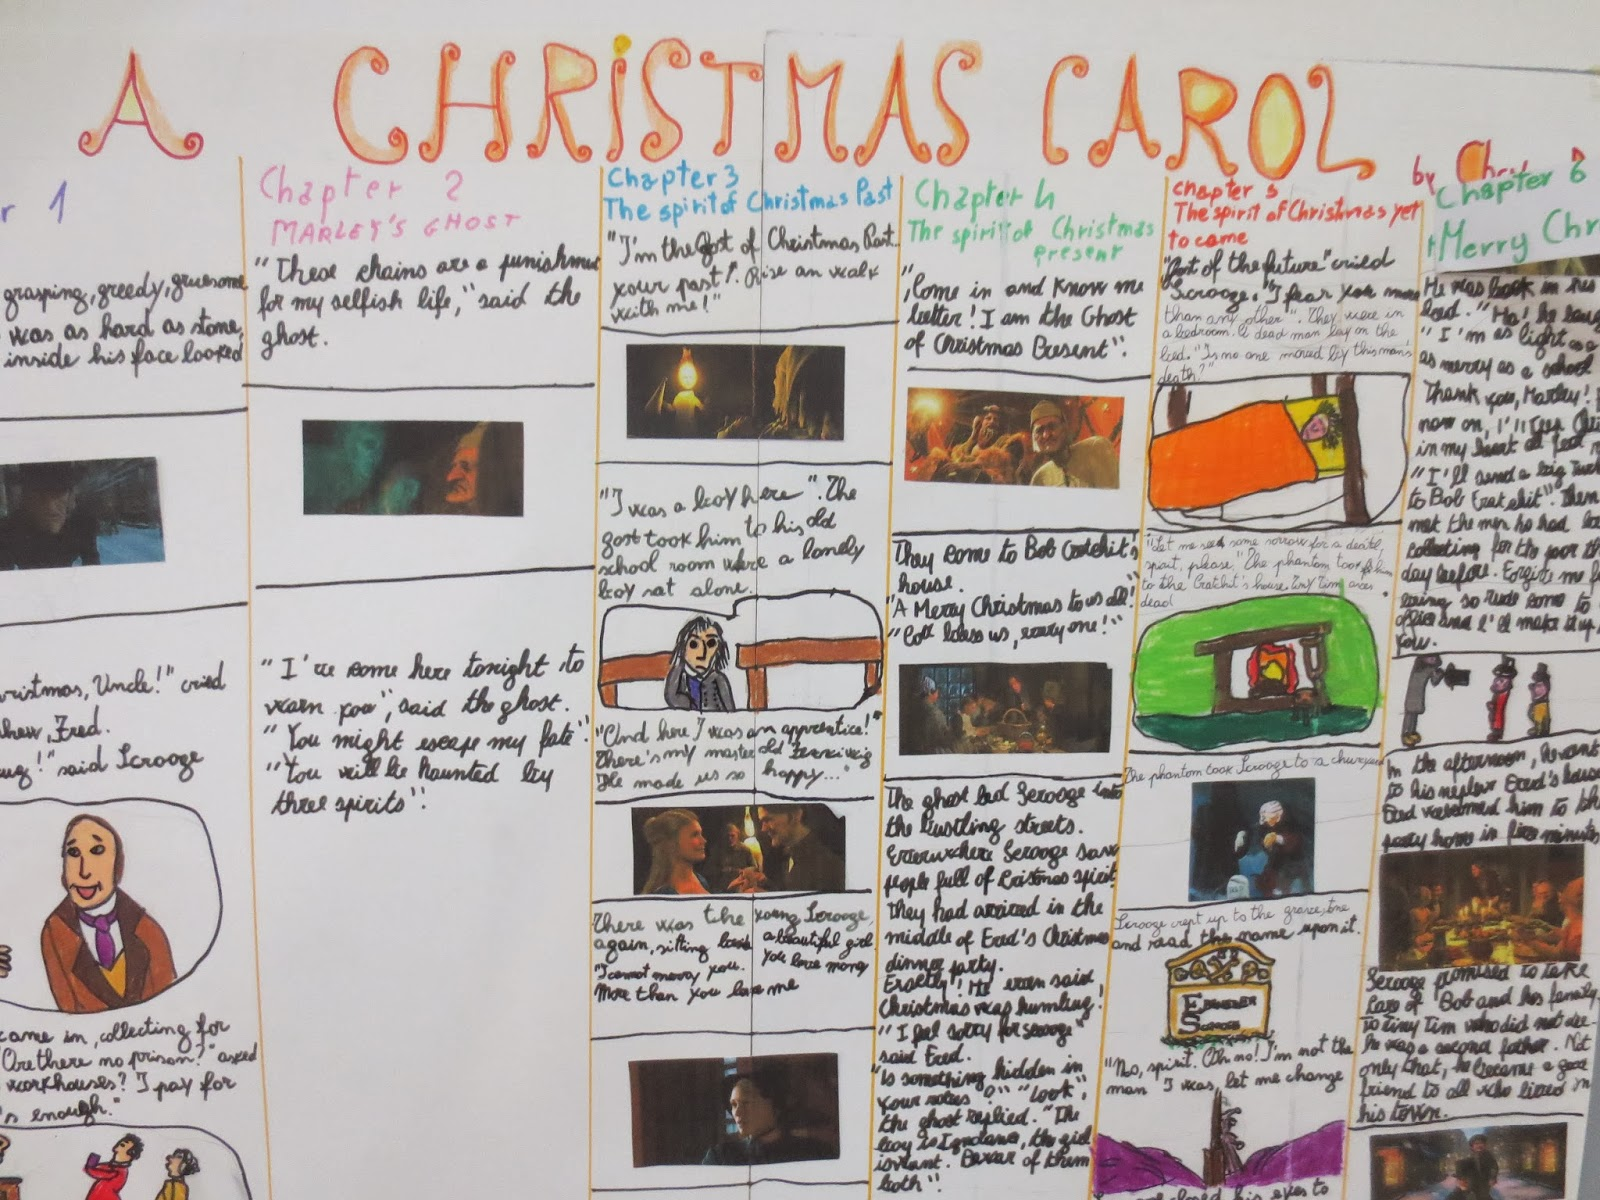 a christmas carol essay questions wjec 19th century prose – a christmas carol use the spark notes online study guide for 'a hristmas arol' use the 'revising the plot and characters of acc' powerpoint available on the ommon drive.